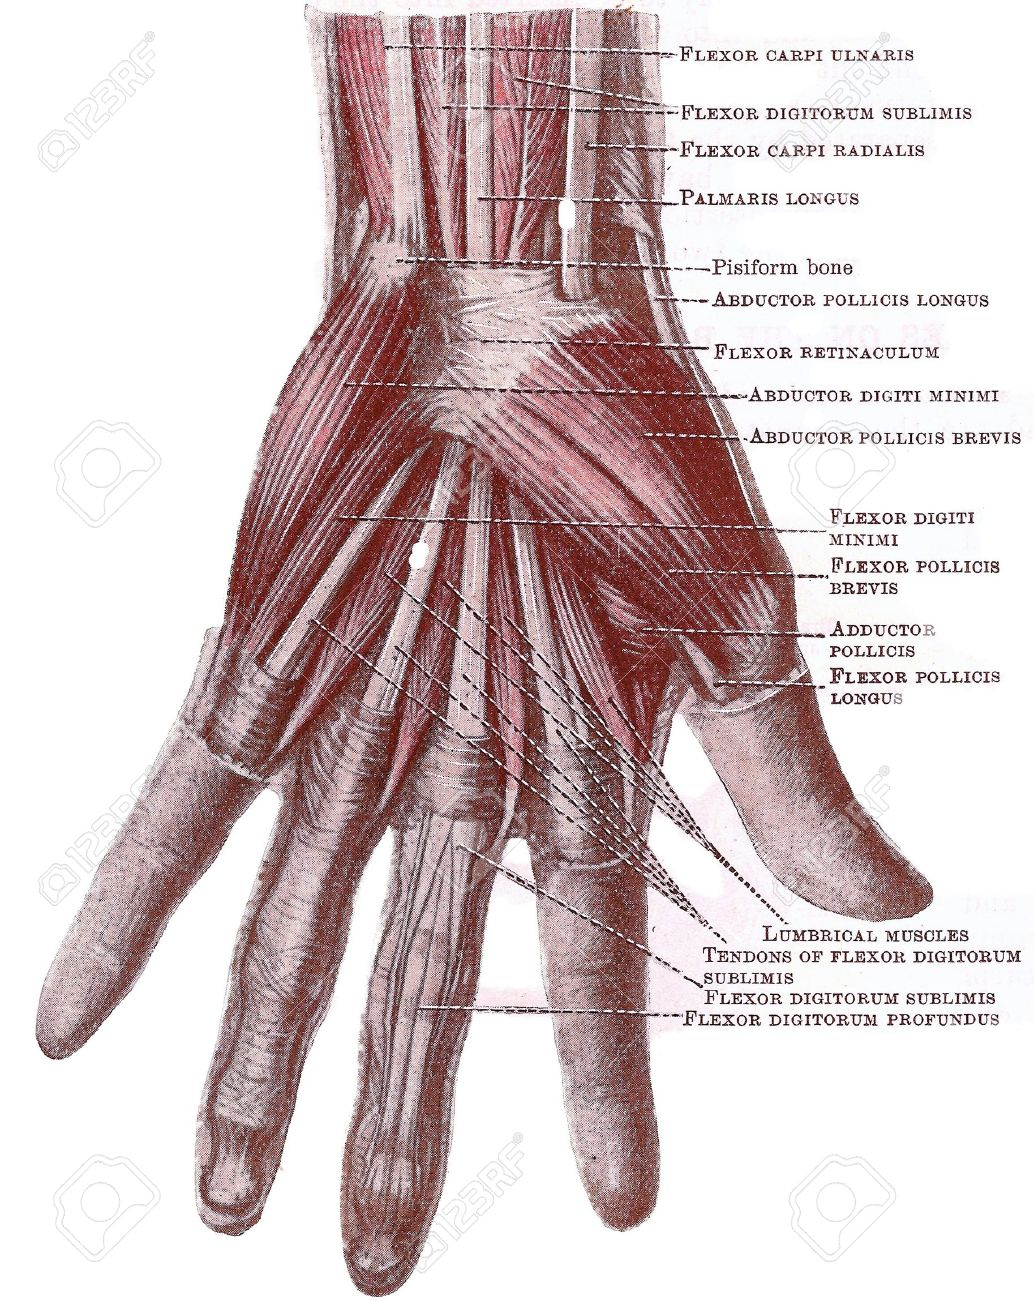 Dissection Of The Hand Superficial Muscles And Tnedons In The